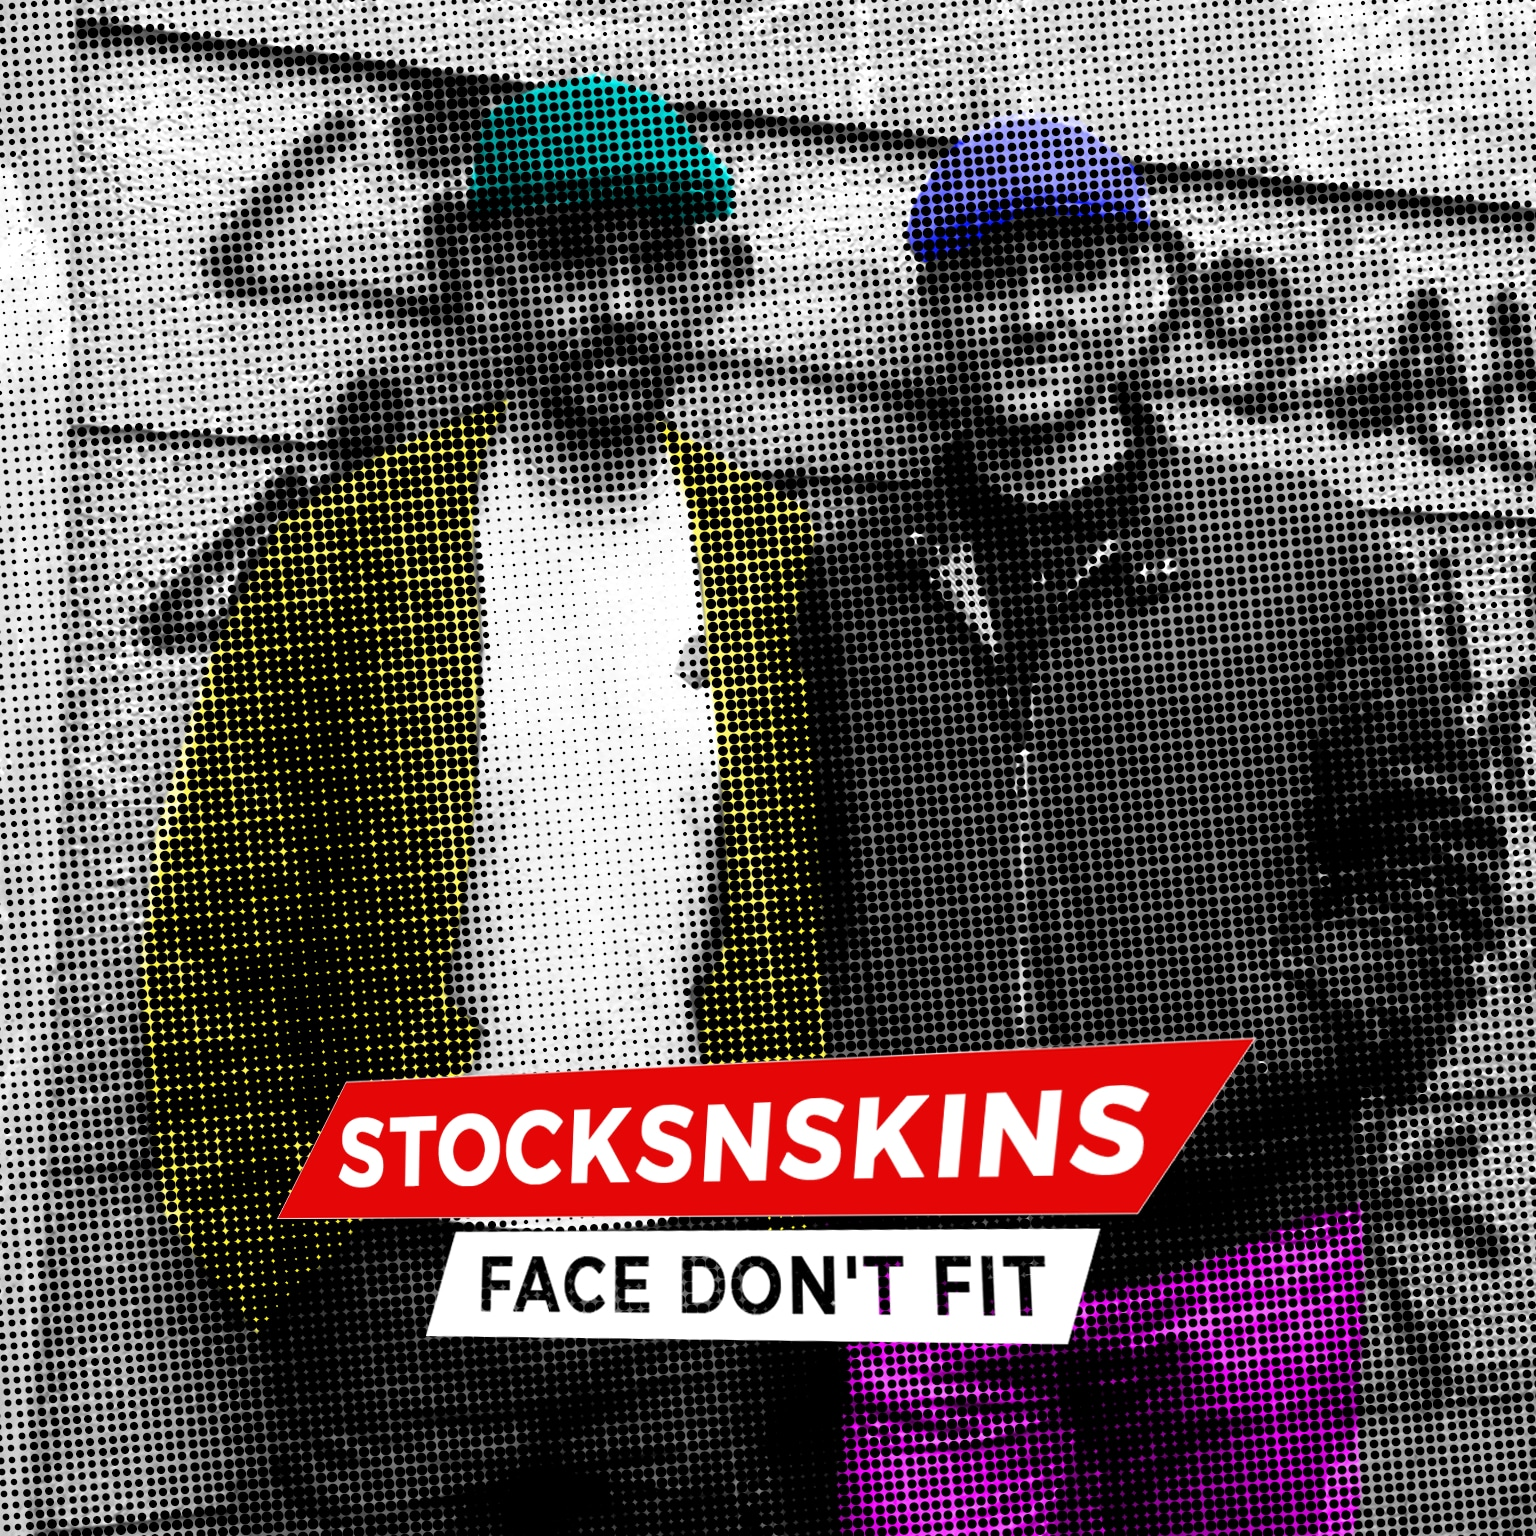 Stocksnskins – Face Don't Fit